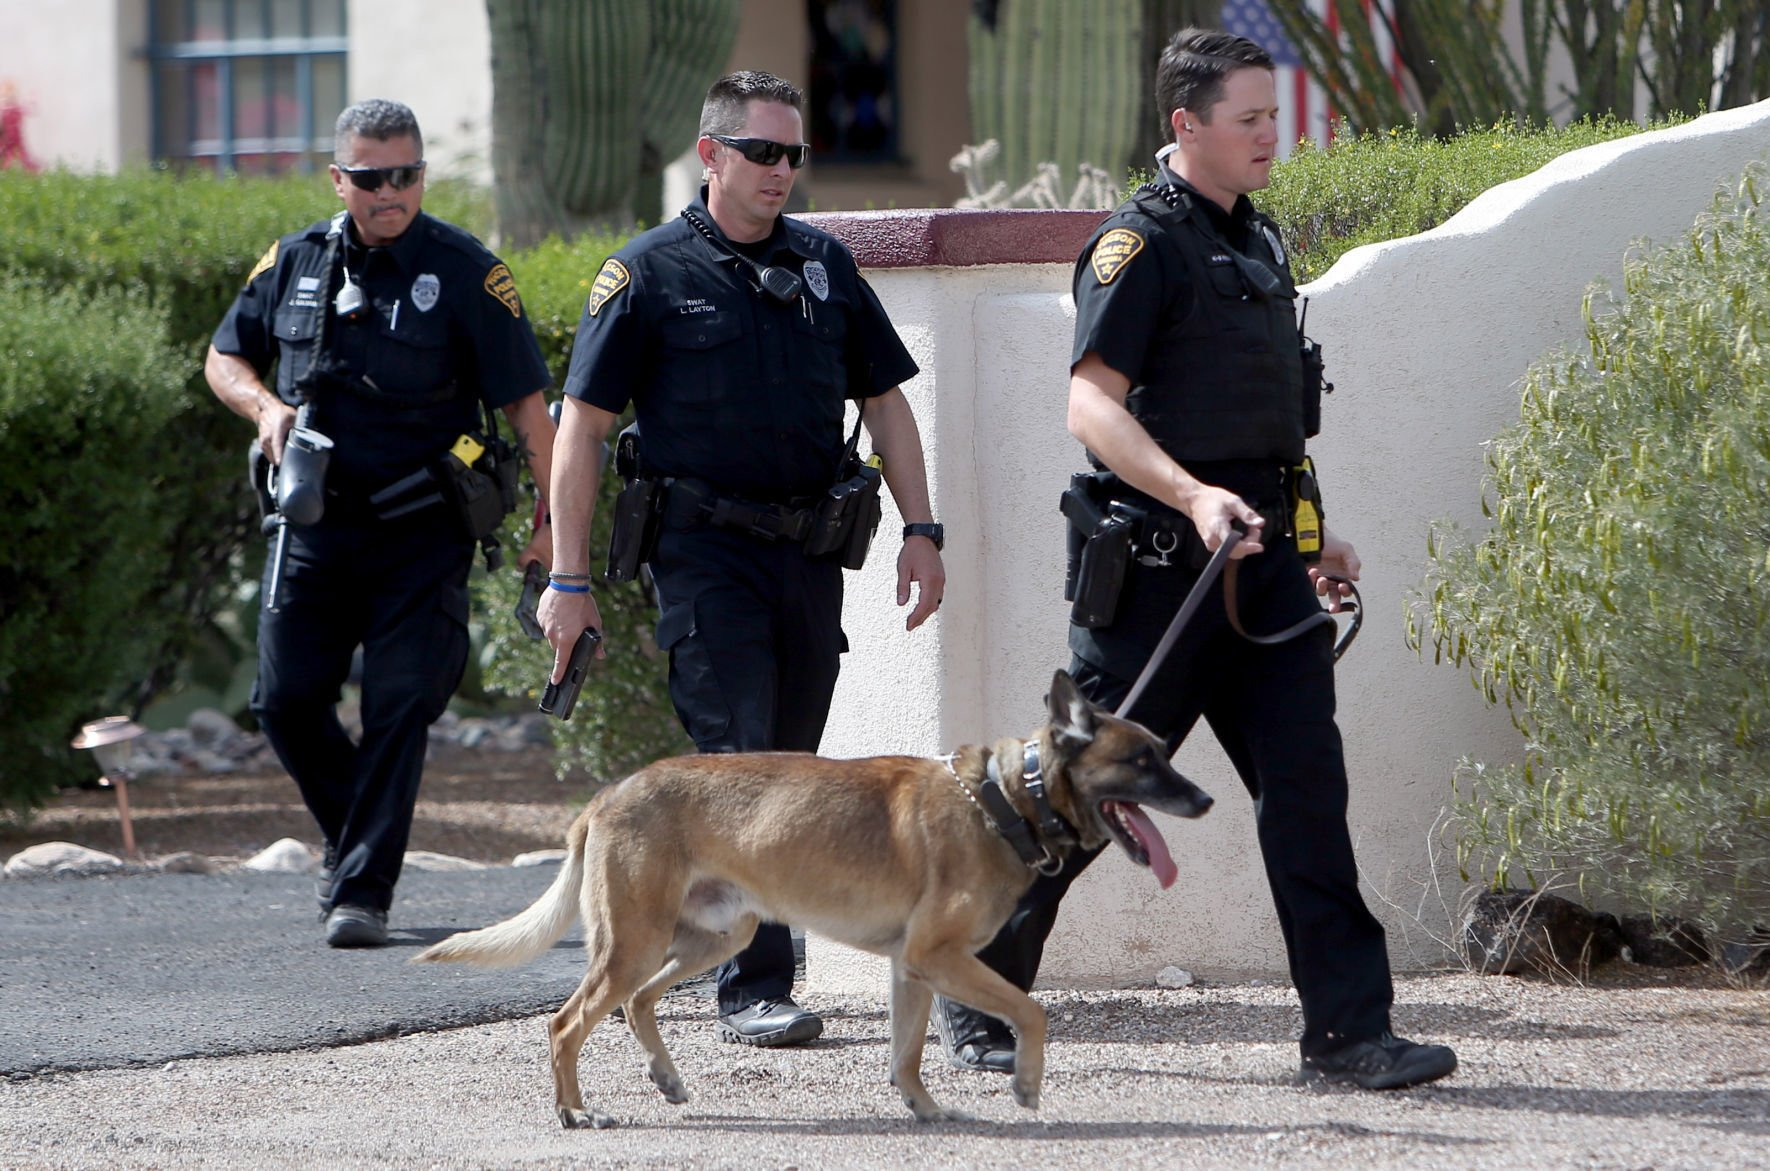 Council backing plan that would give some police officers 15% pay boost | Tucson.com